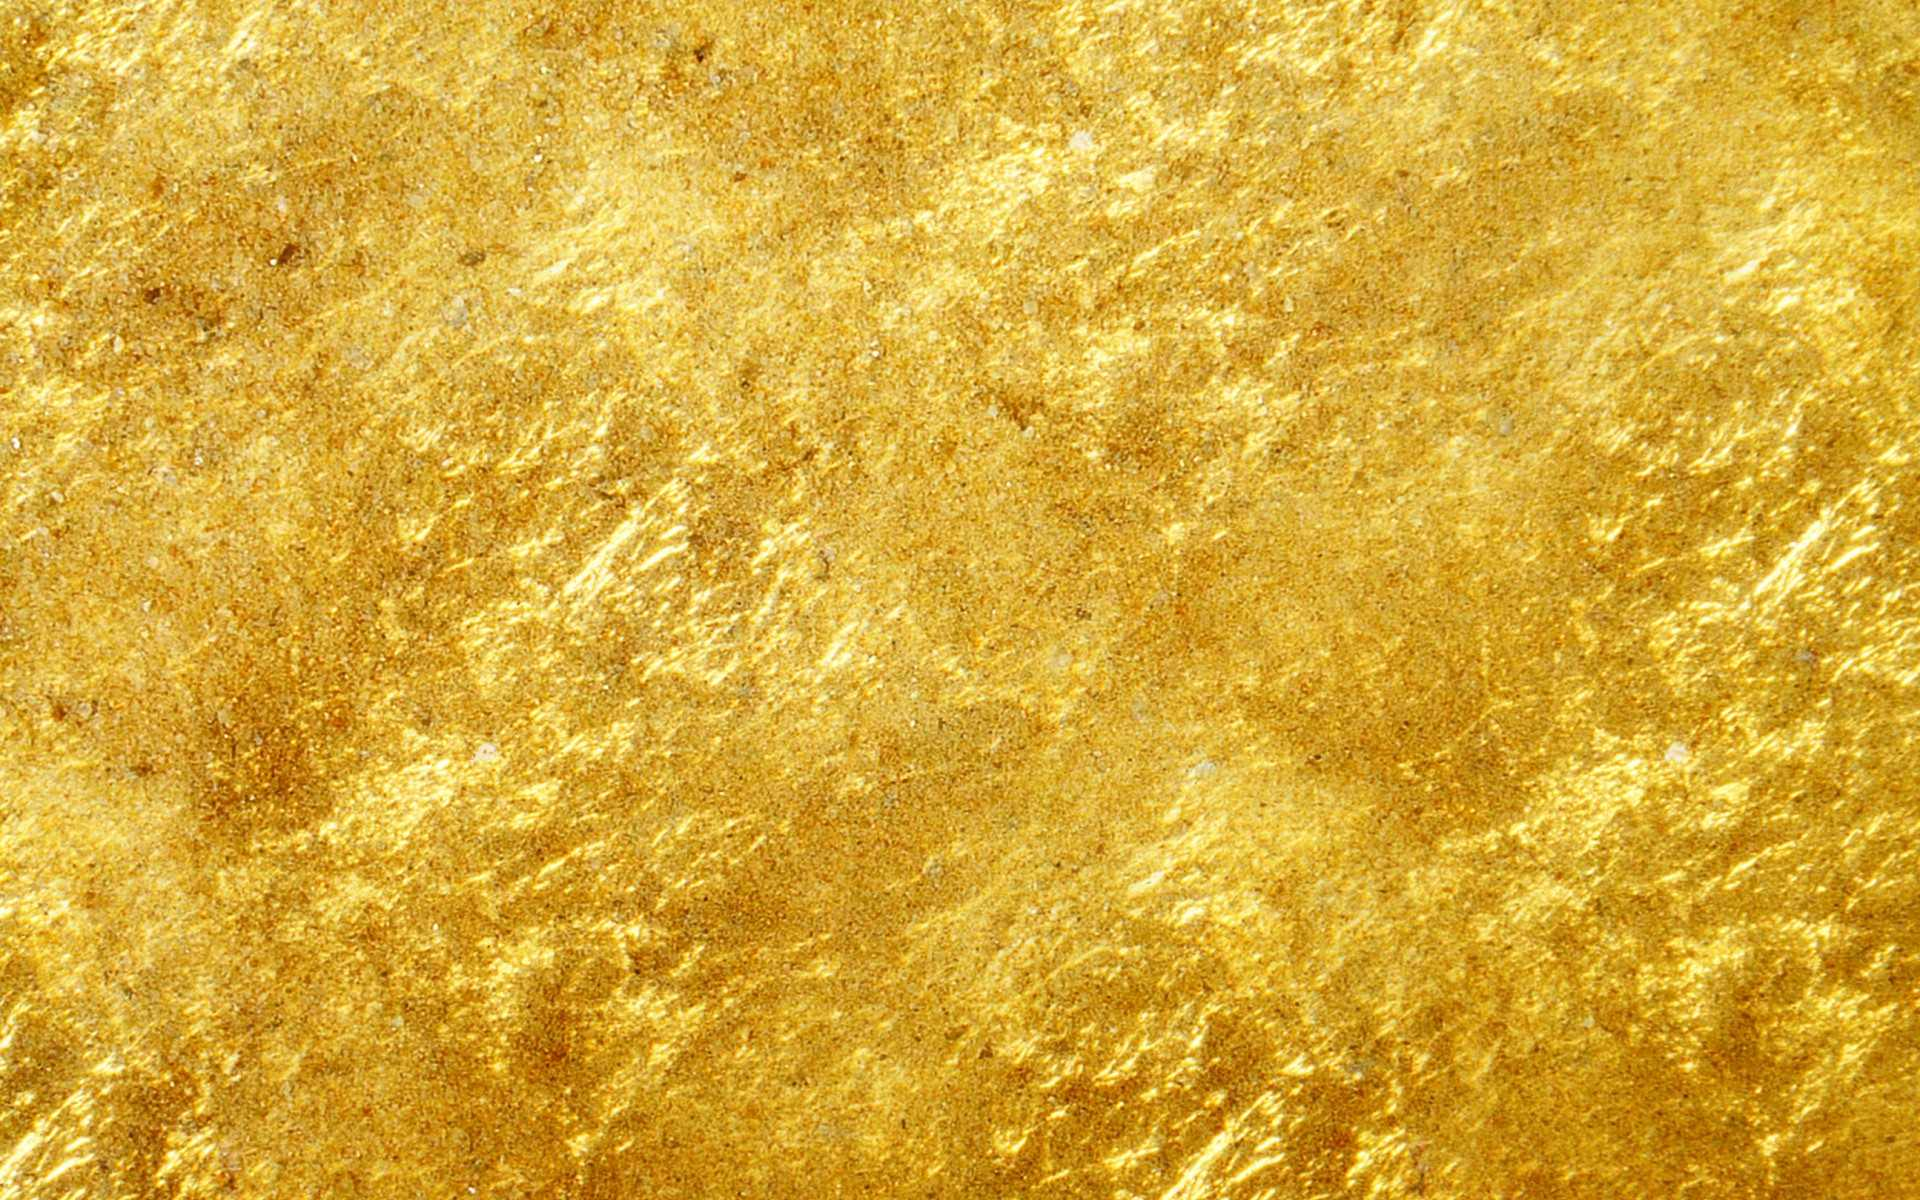 Abstract Textured Golden Wallpaper